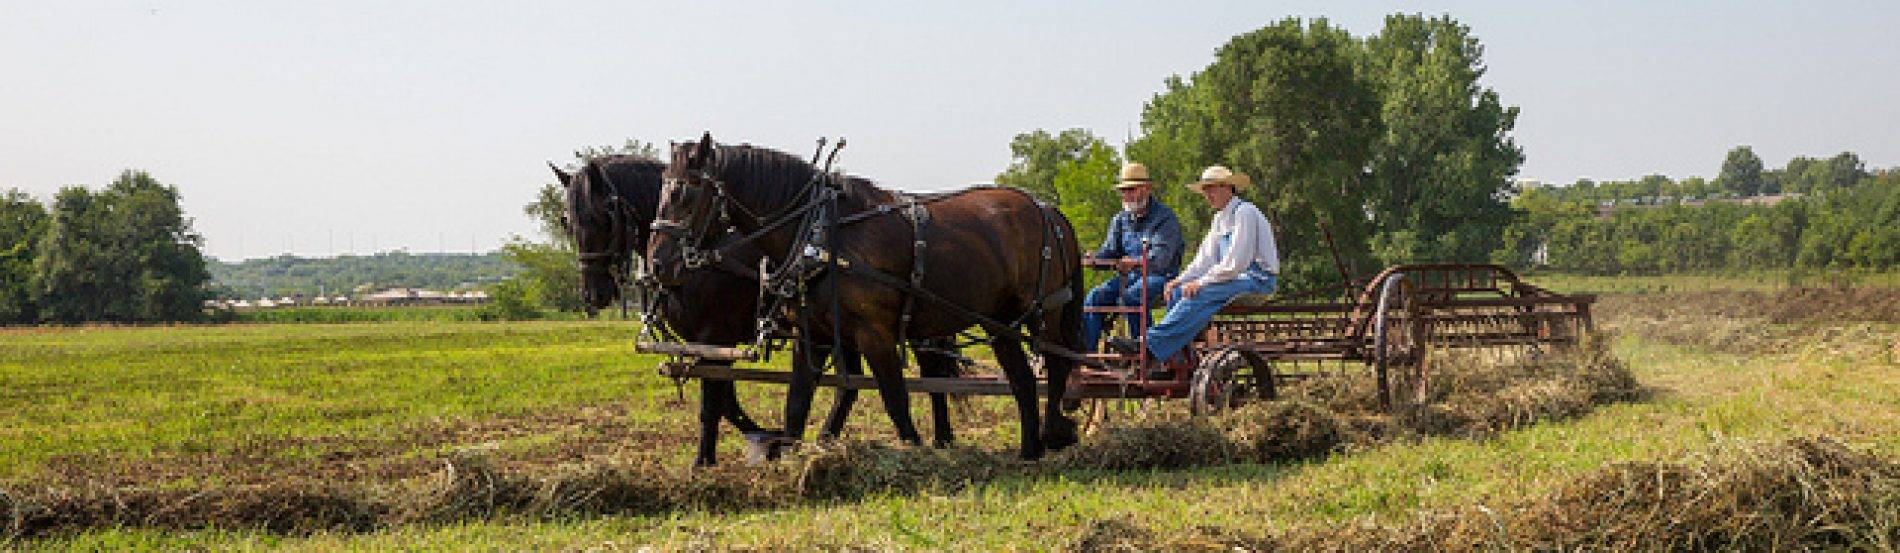 horses pulling farm implements